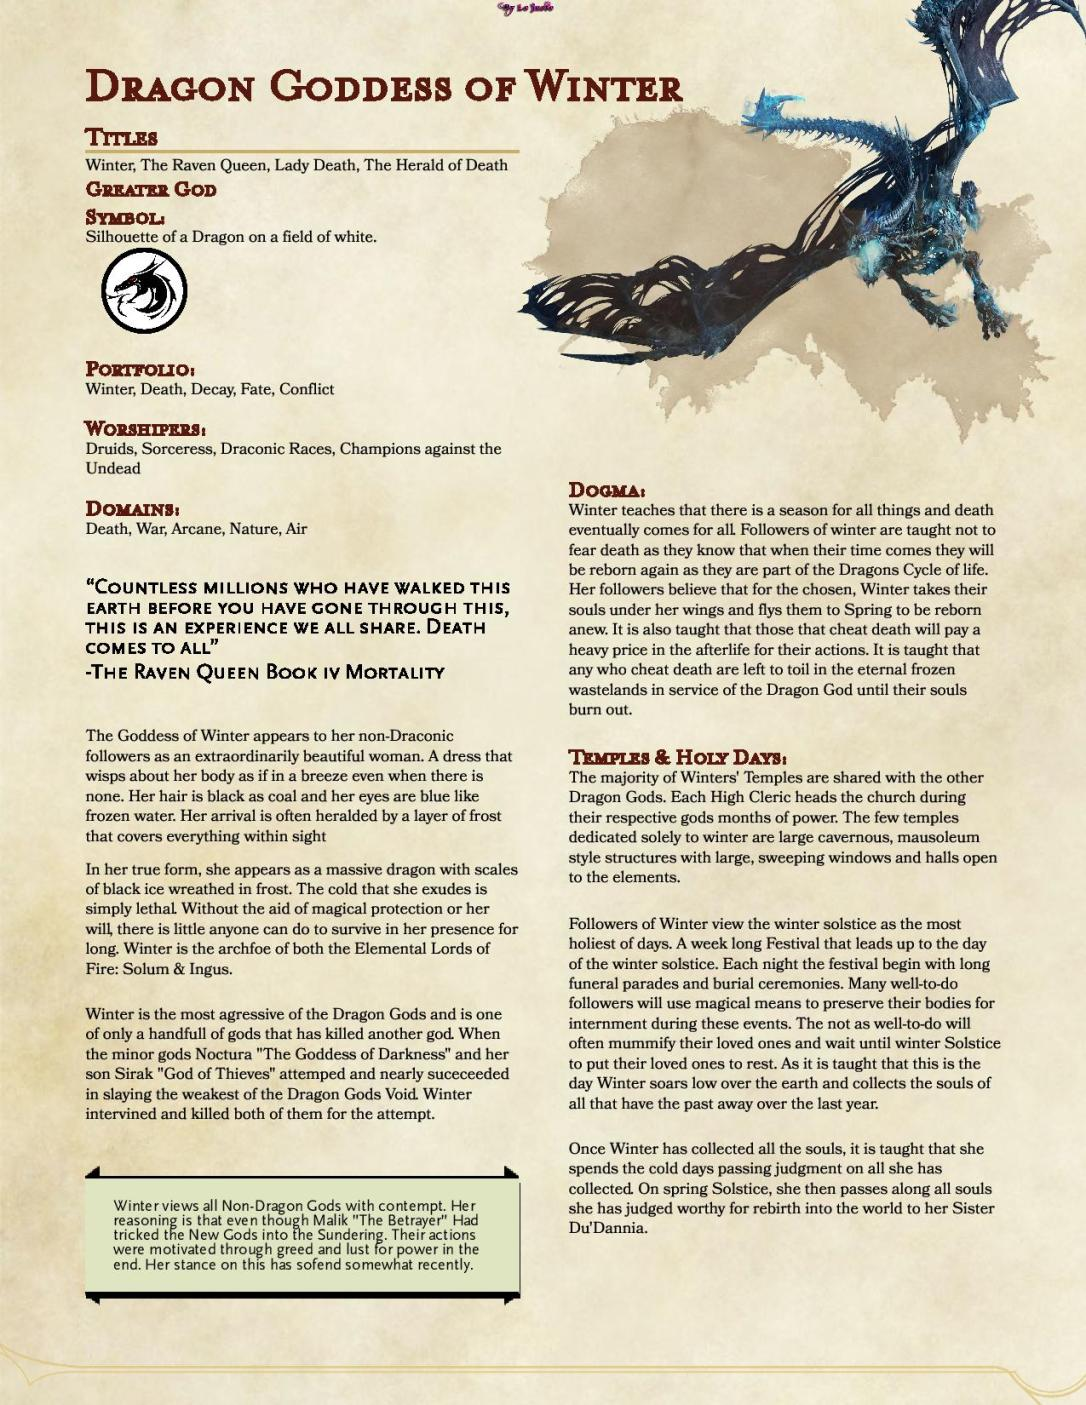 winter-dragon-goddess-first-draft-page-001